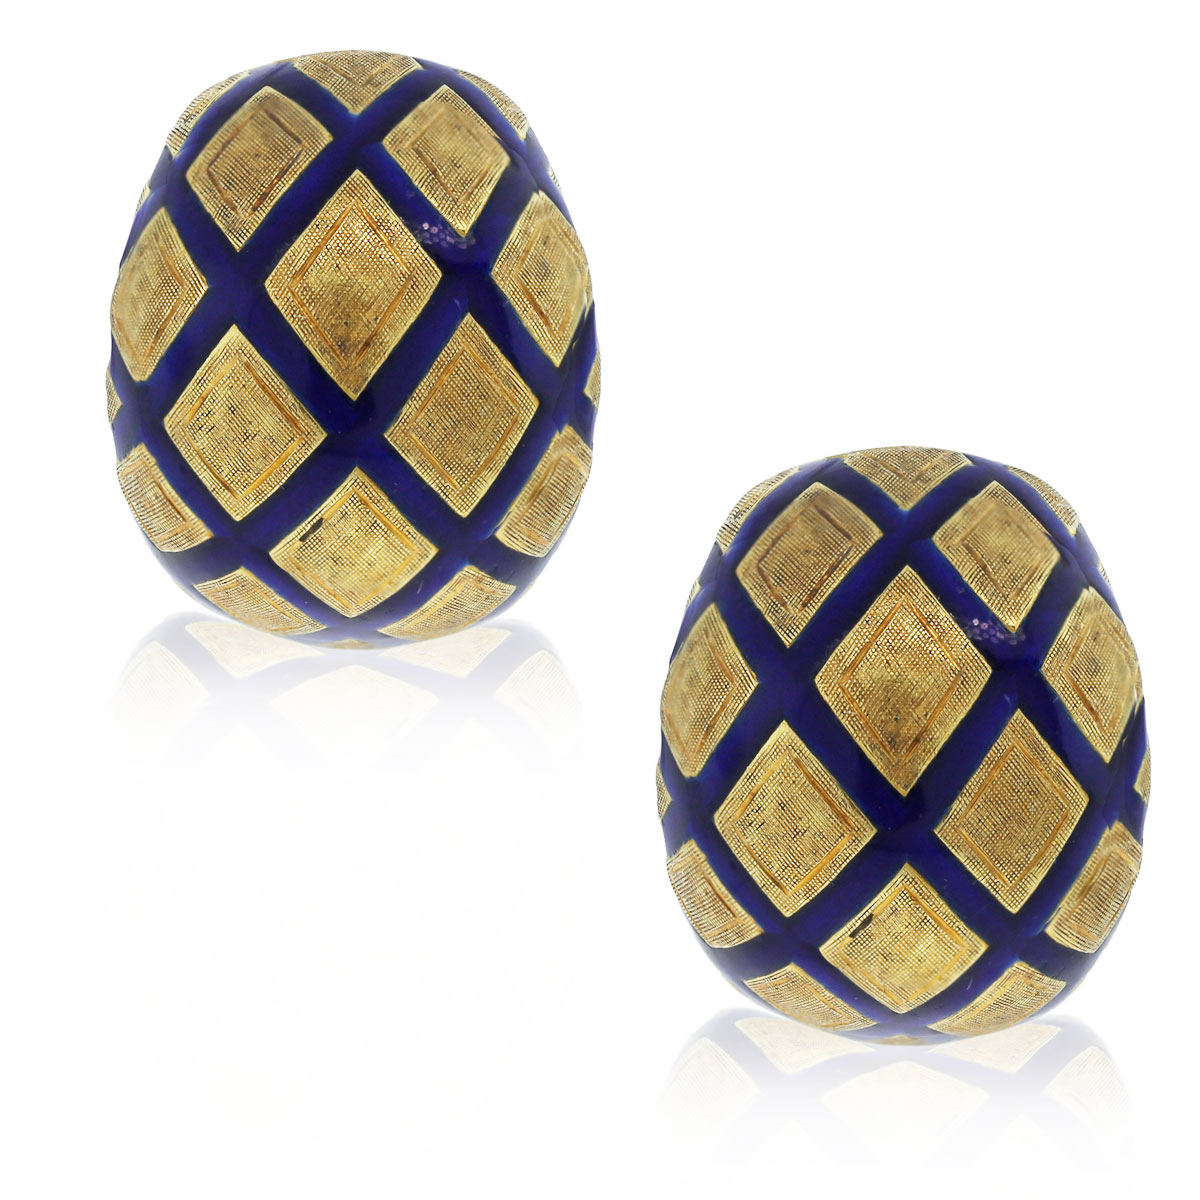 Check out these 18kt Textured Yellow Gold Blue Enamel Earrings